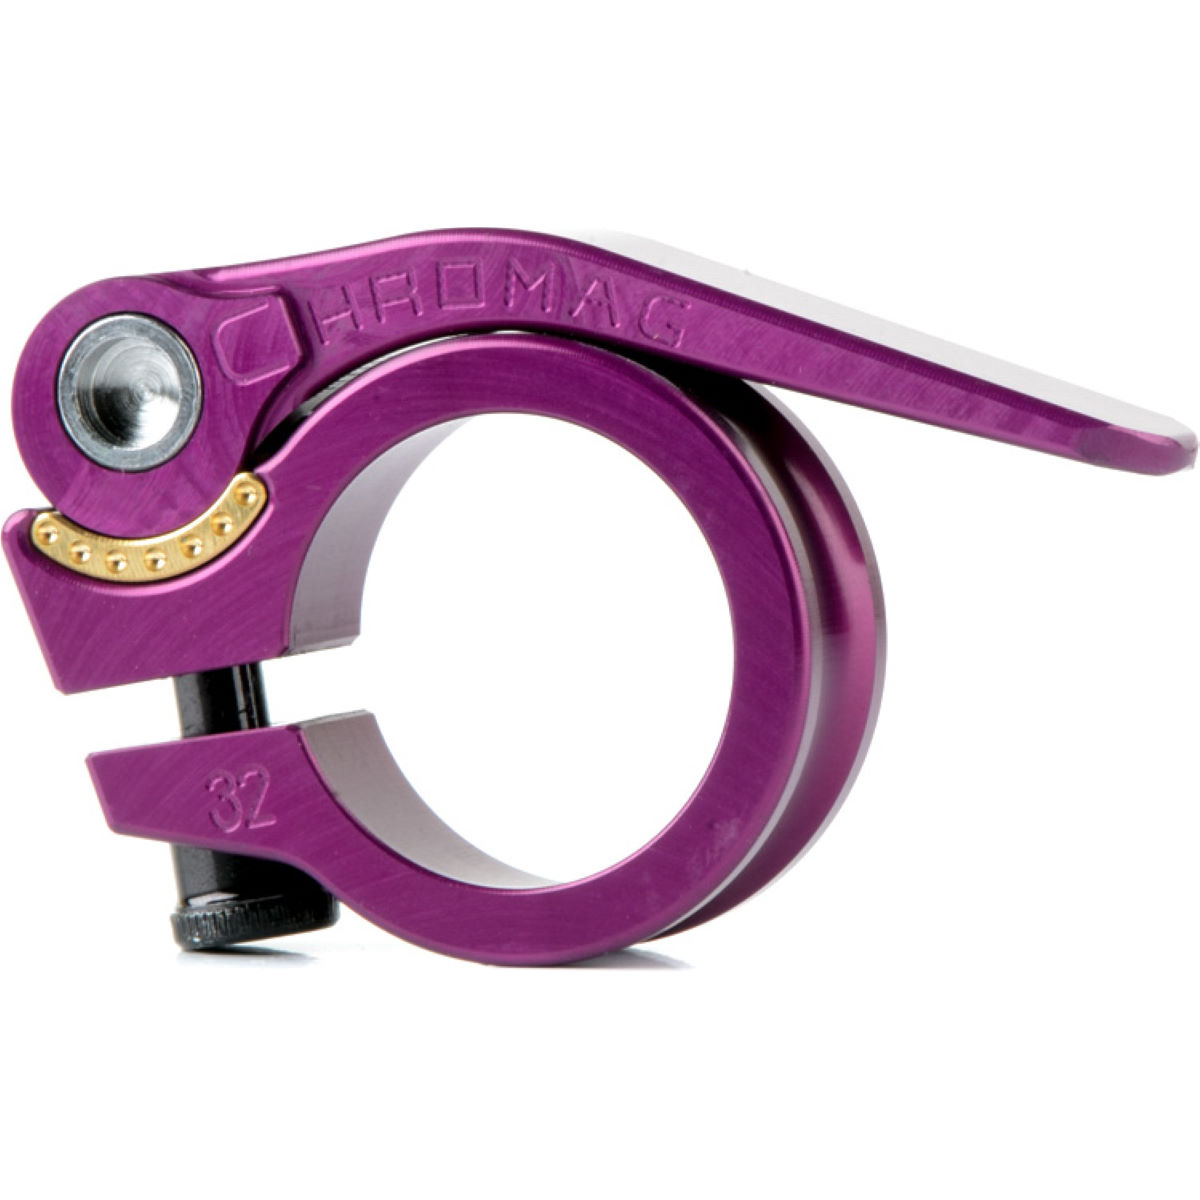 Chromag Qr Seat Post Clamp - 35mm Purple  Seat Post Clamps